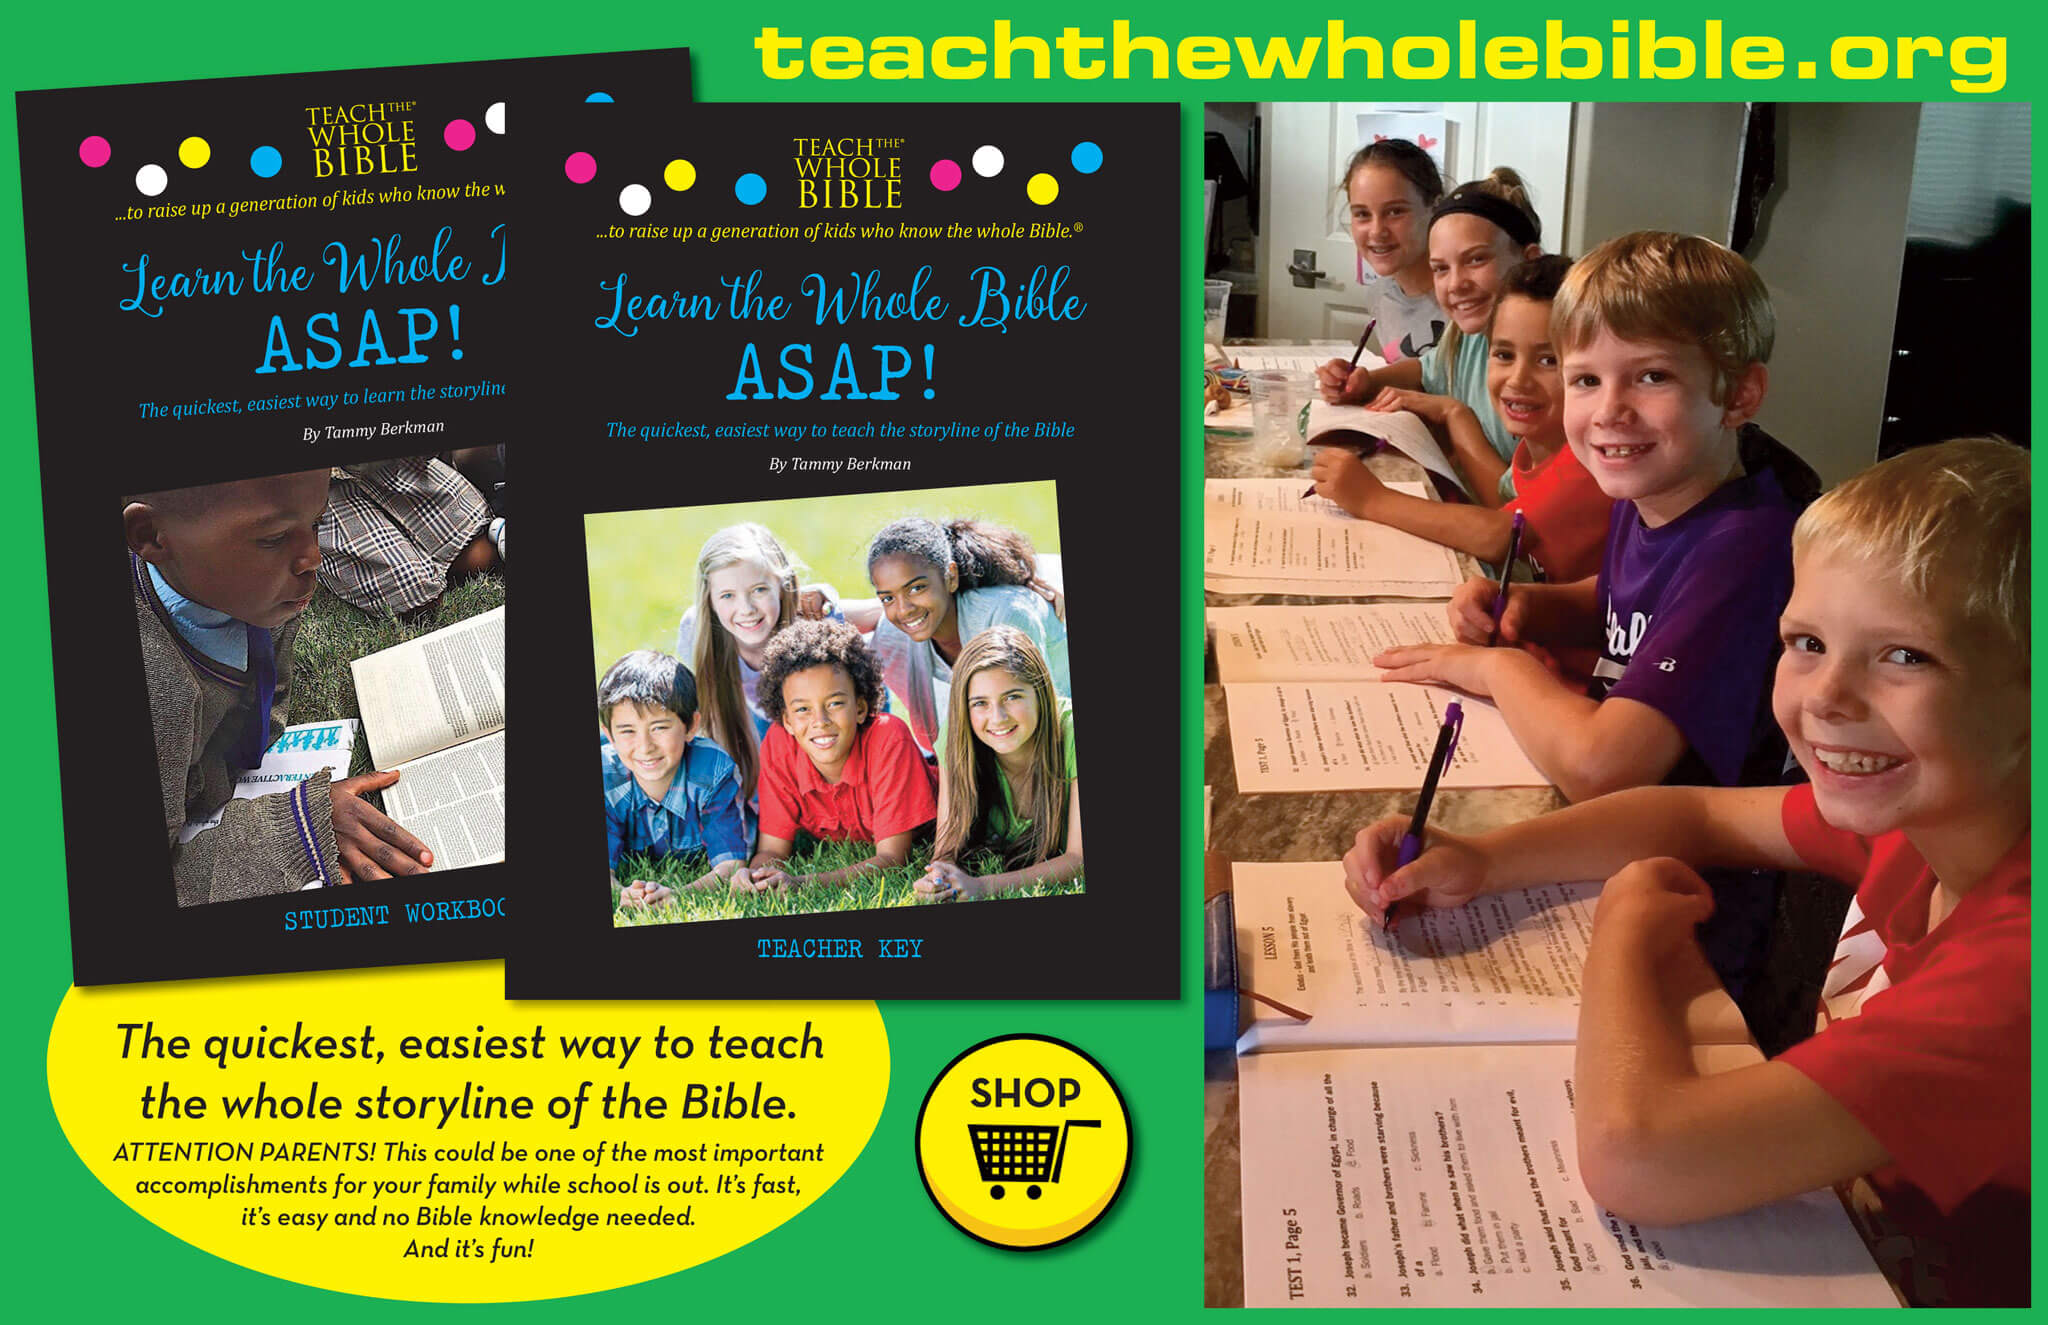 teach the whole bible ad